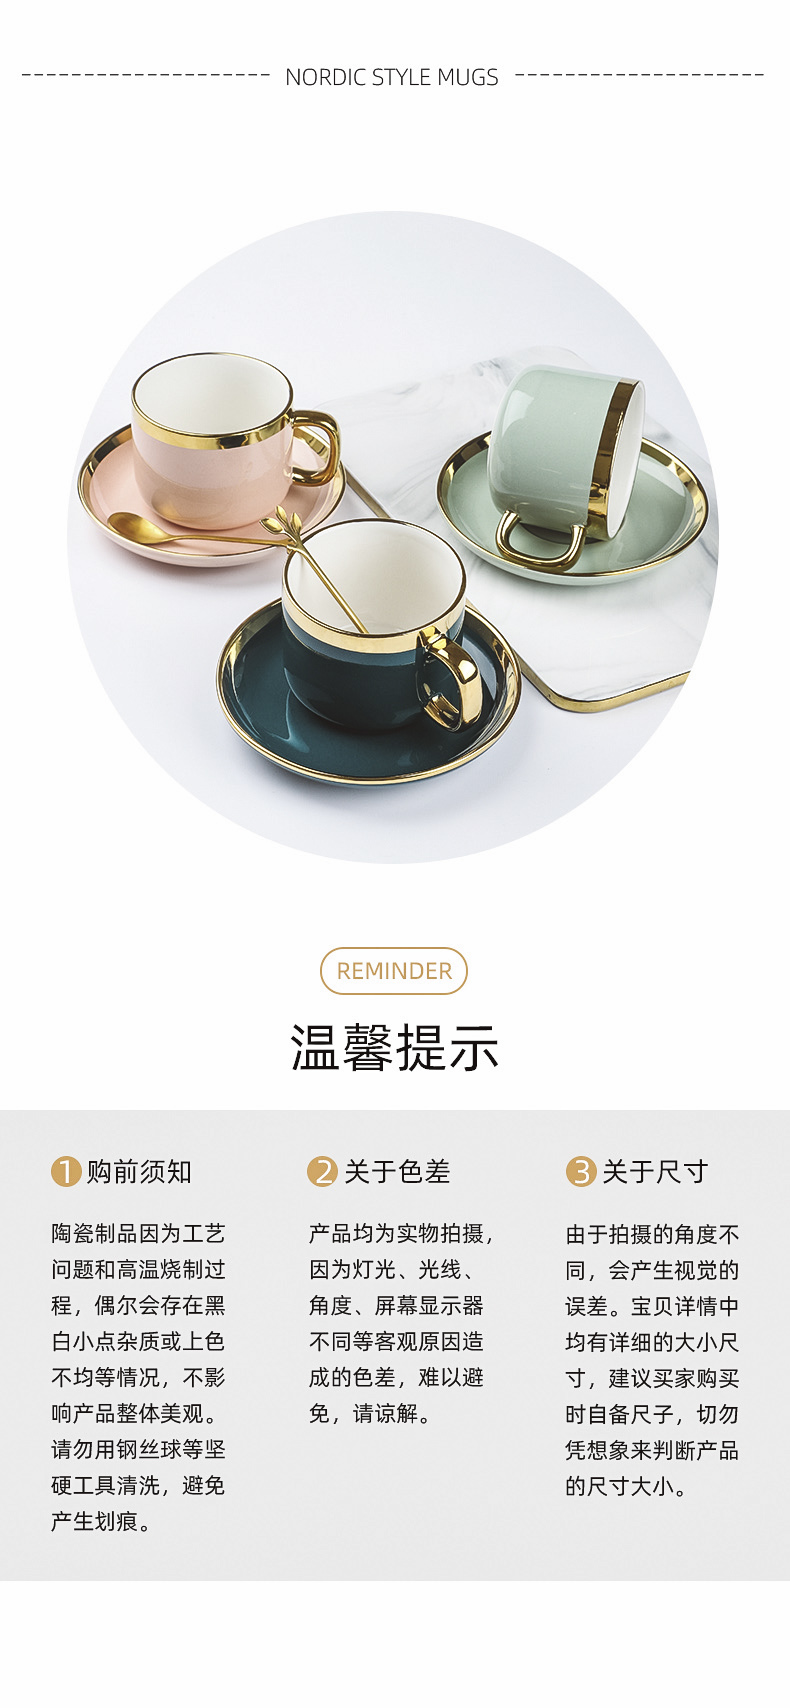 Bincoo European ceramic coffee cup set contracted coffee cup six sets of household small key-2 luxury coffee cups and saucers spoon